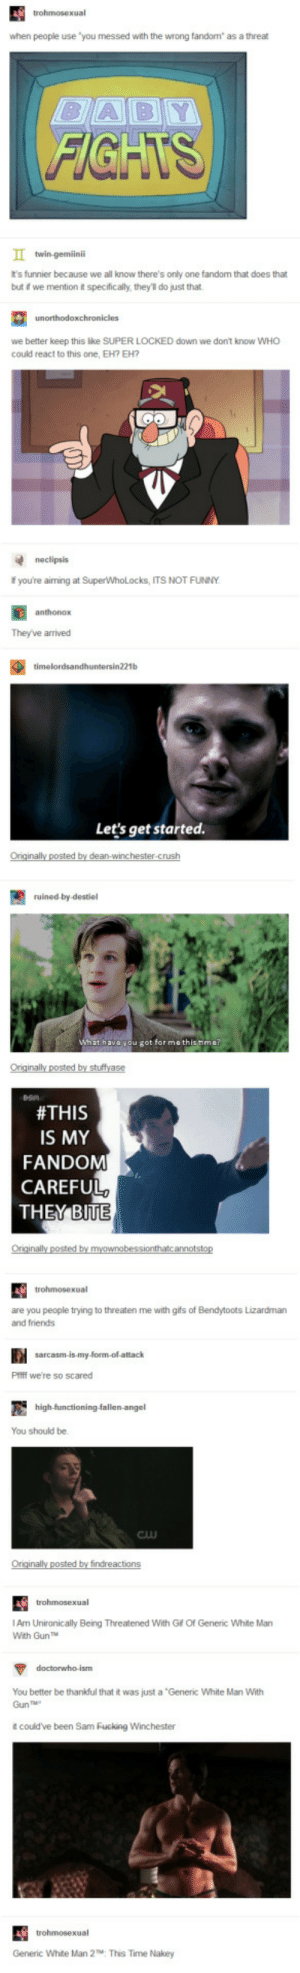 "SuperWhoLock is a very threatening fandom /s: when people use ""you messed with the wrong fandom"" as a threat  FIGHTS  t's funnier because we all know there's only one fandom that does that  but t we mention t specifically, they'll do just that  we better keep this lke SUPER LOCKED down we don't know WHO  coukd react to this one, EH? EH?  neclipsis  f you're aiming at SuperWhoLocks, ITS NOT FUNNY  anthonox  Theyve arrived  Let's get started.  dean-winchester  ruined-by-destiel  at have vou got for methistime  #THIS  IS MY  FANDOM  CAREFUL  are you people trying to threaten me with gifs of Bendytoots Lizardman  and friends  Pifff we're so scared  You should be.  Cw  I Am Unironically Being Threatened With Gf Of Generic White Man  With GunT  You better be thankful that it was just a 'Generic White Man With  Gun  t couldve been Sam Fucking Winchester  Generic White Man 2  This Time Nakey SuperWhoLock is a very threatening fandom /s"